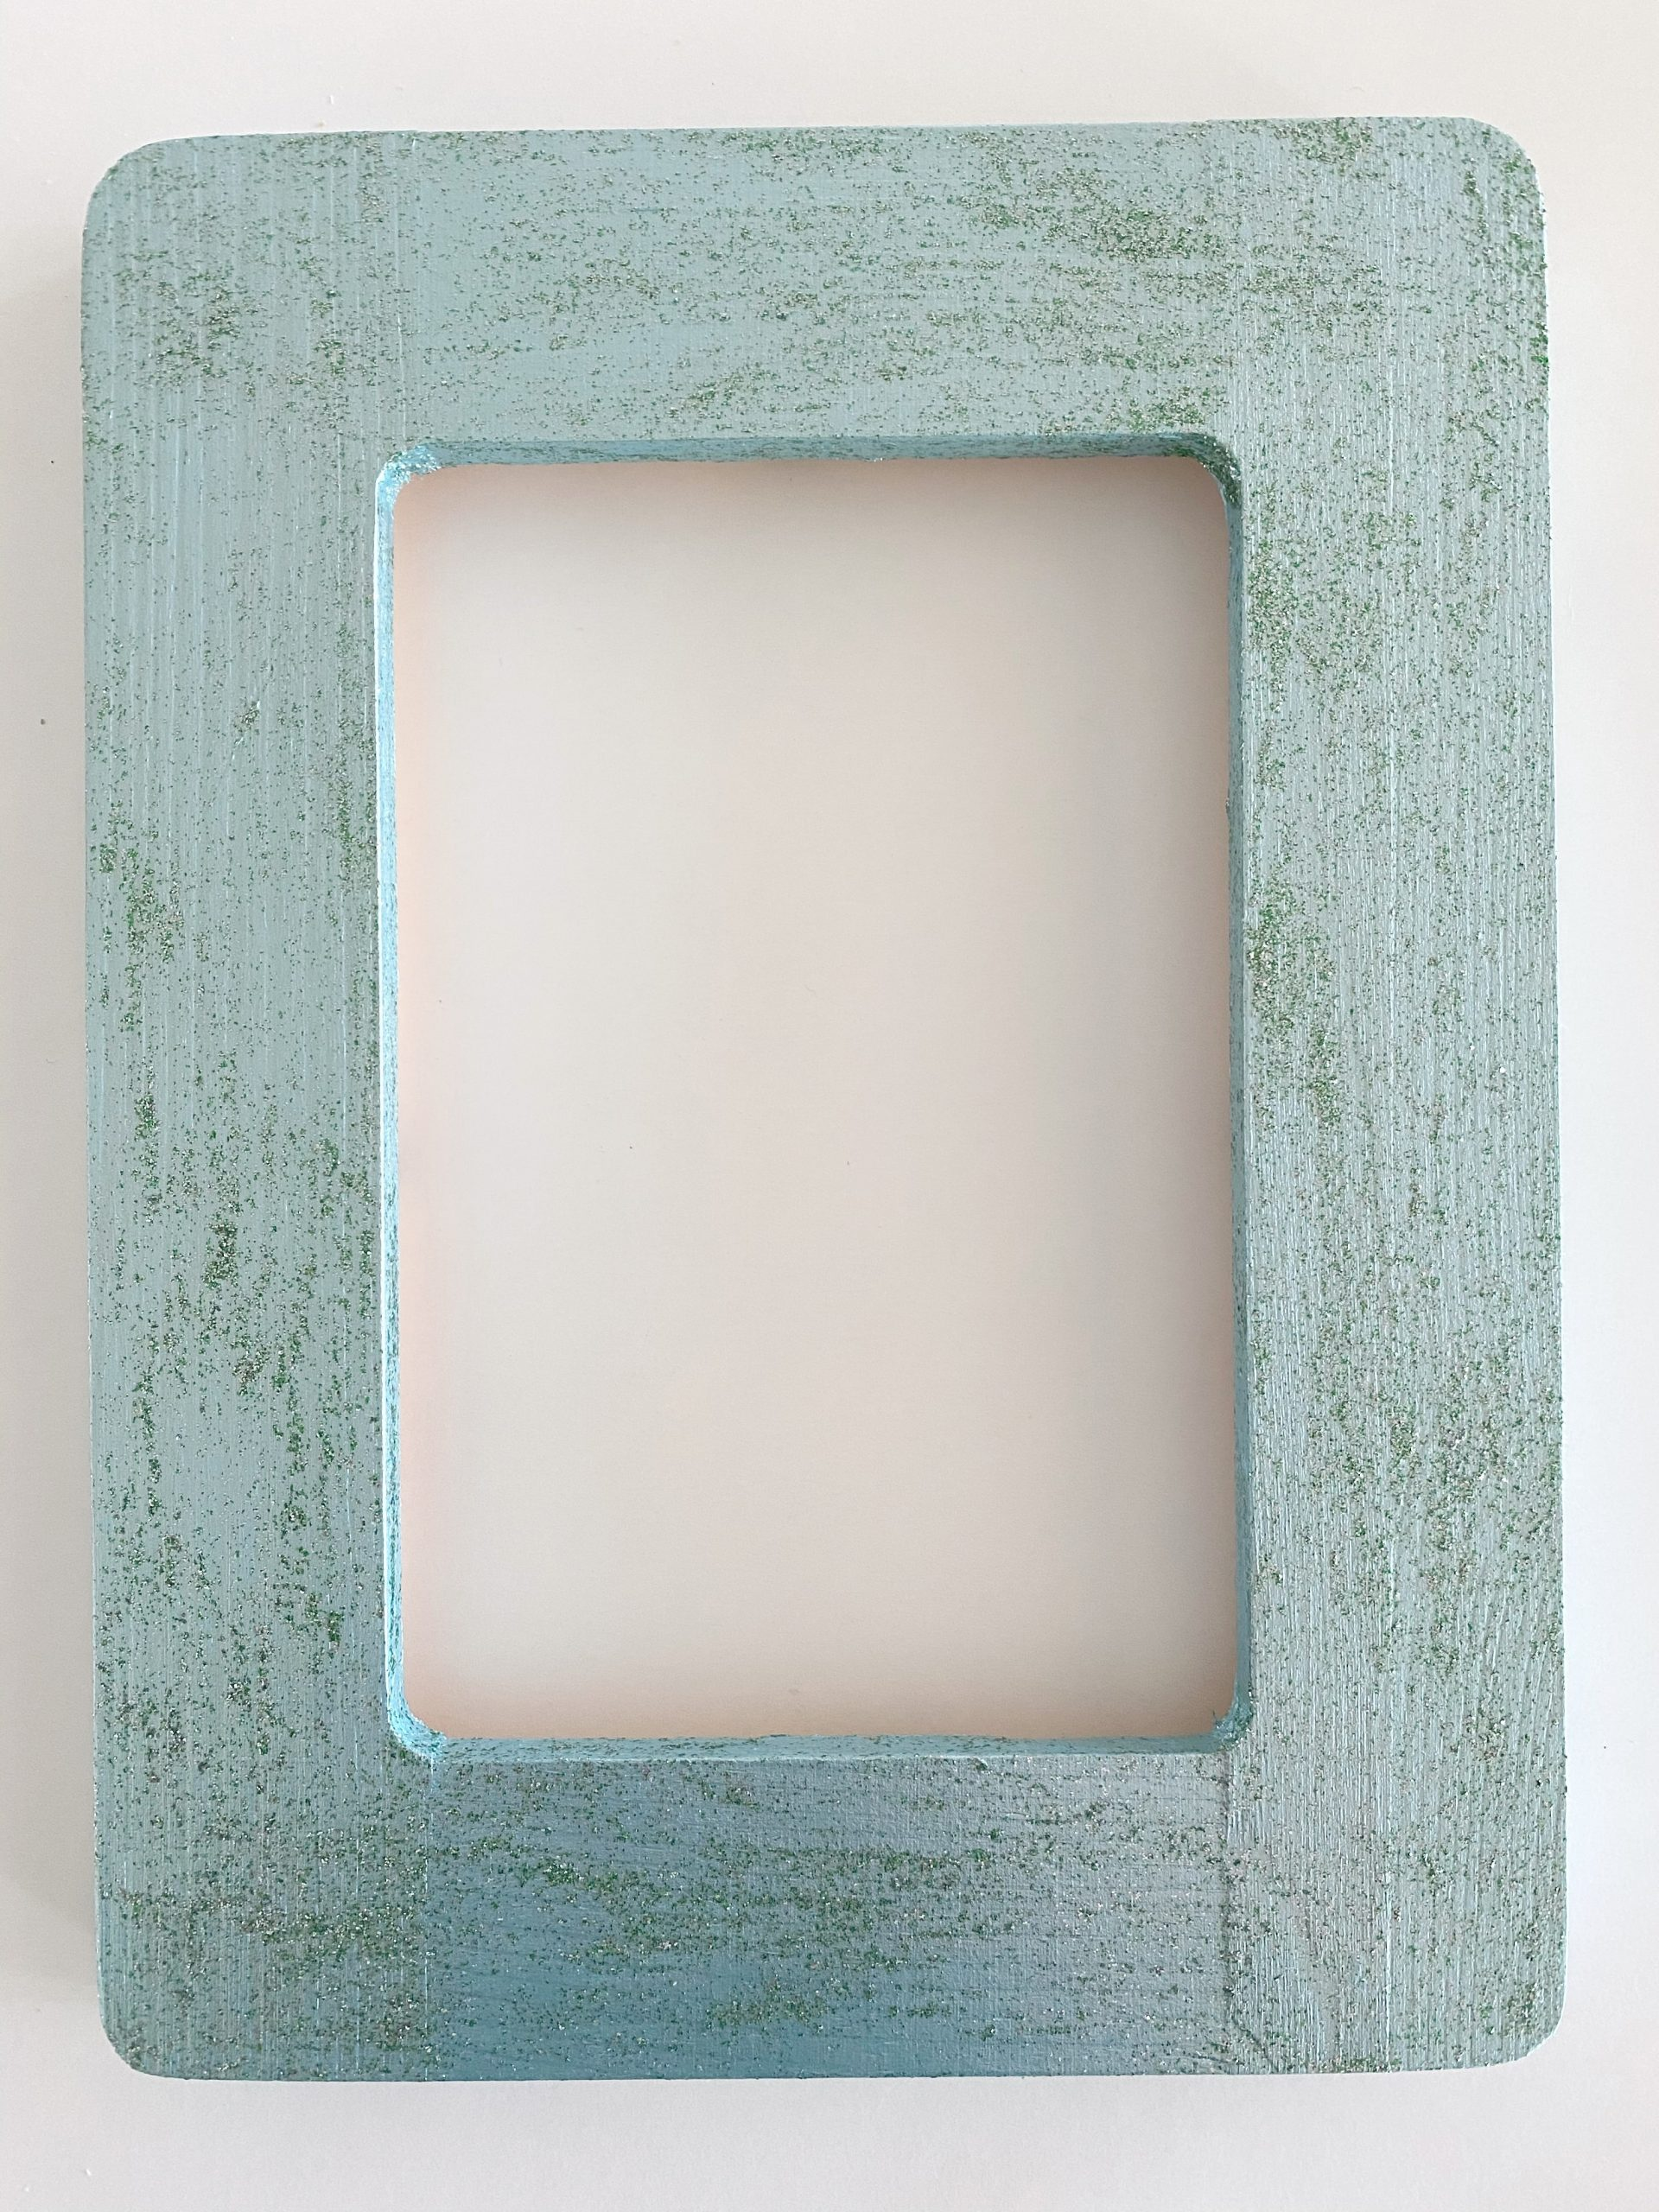 painted wooden frame